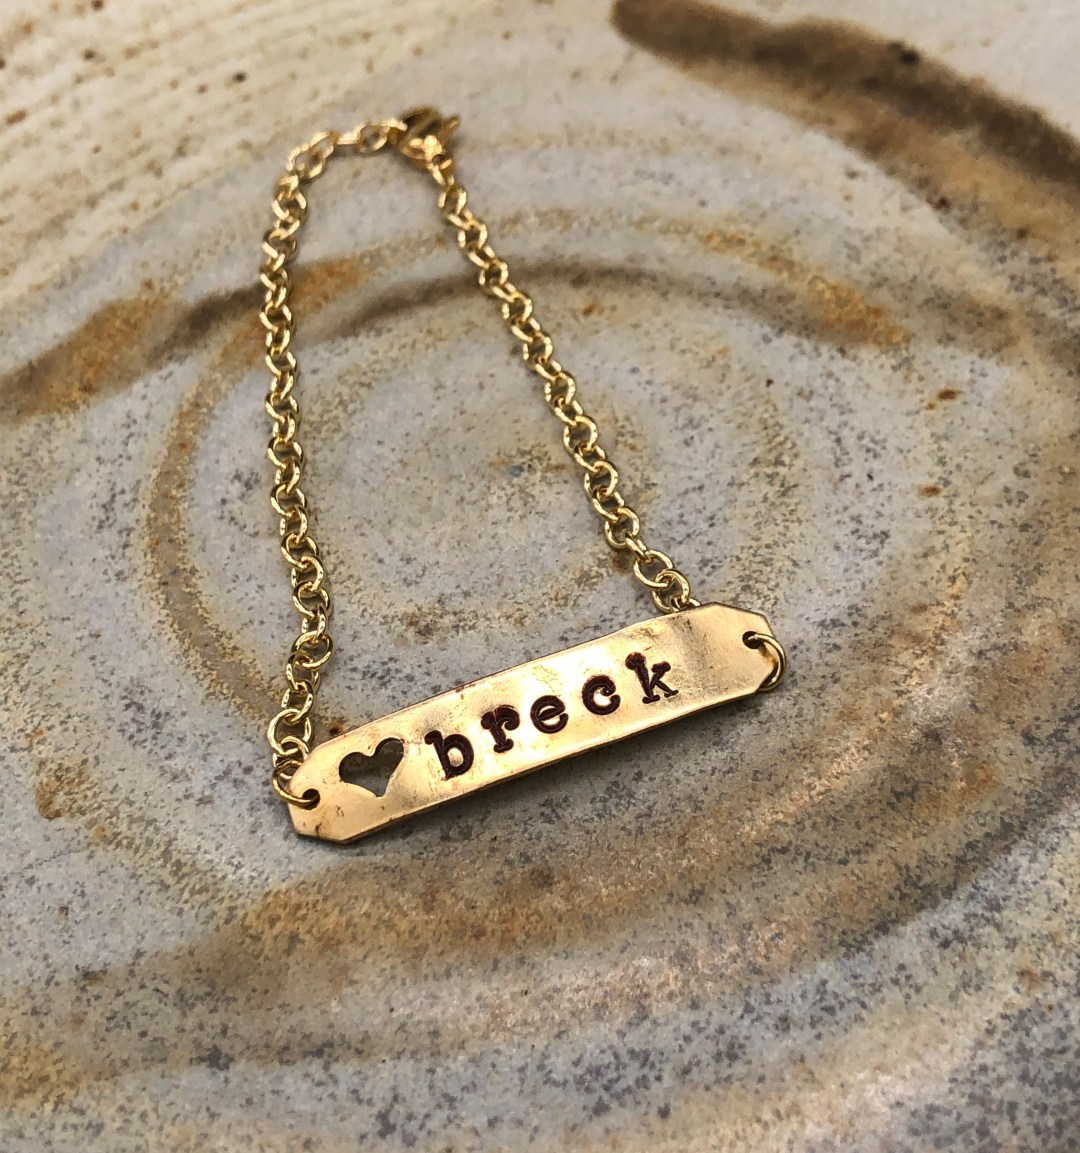 Stamped Metal Necklace